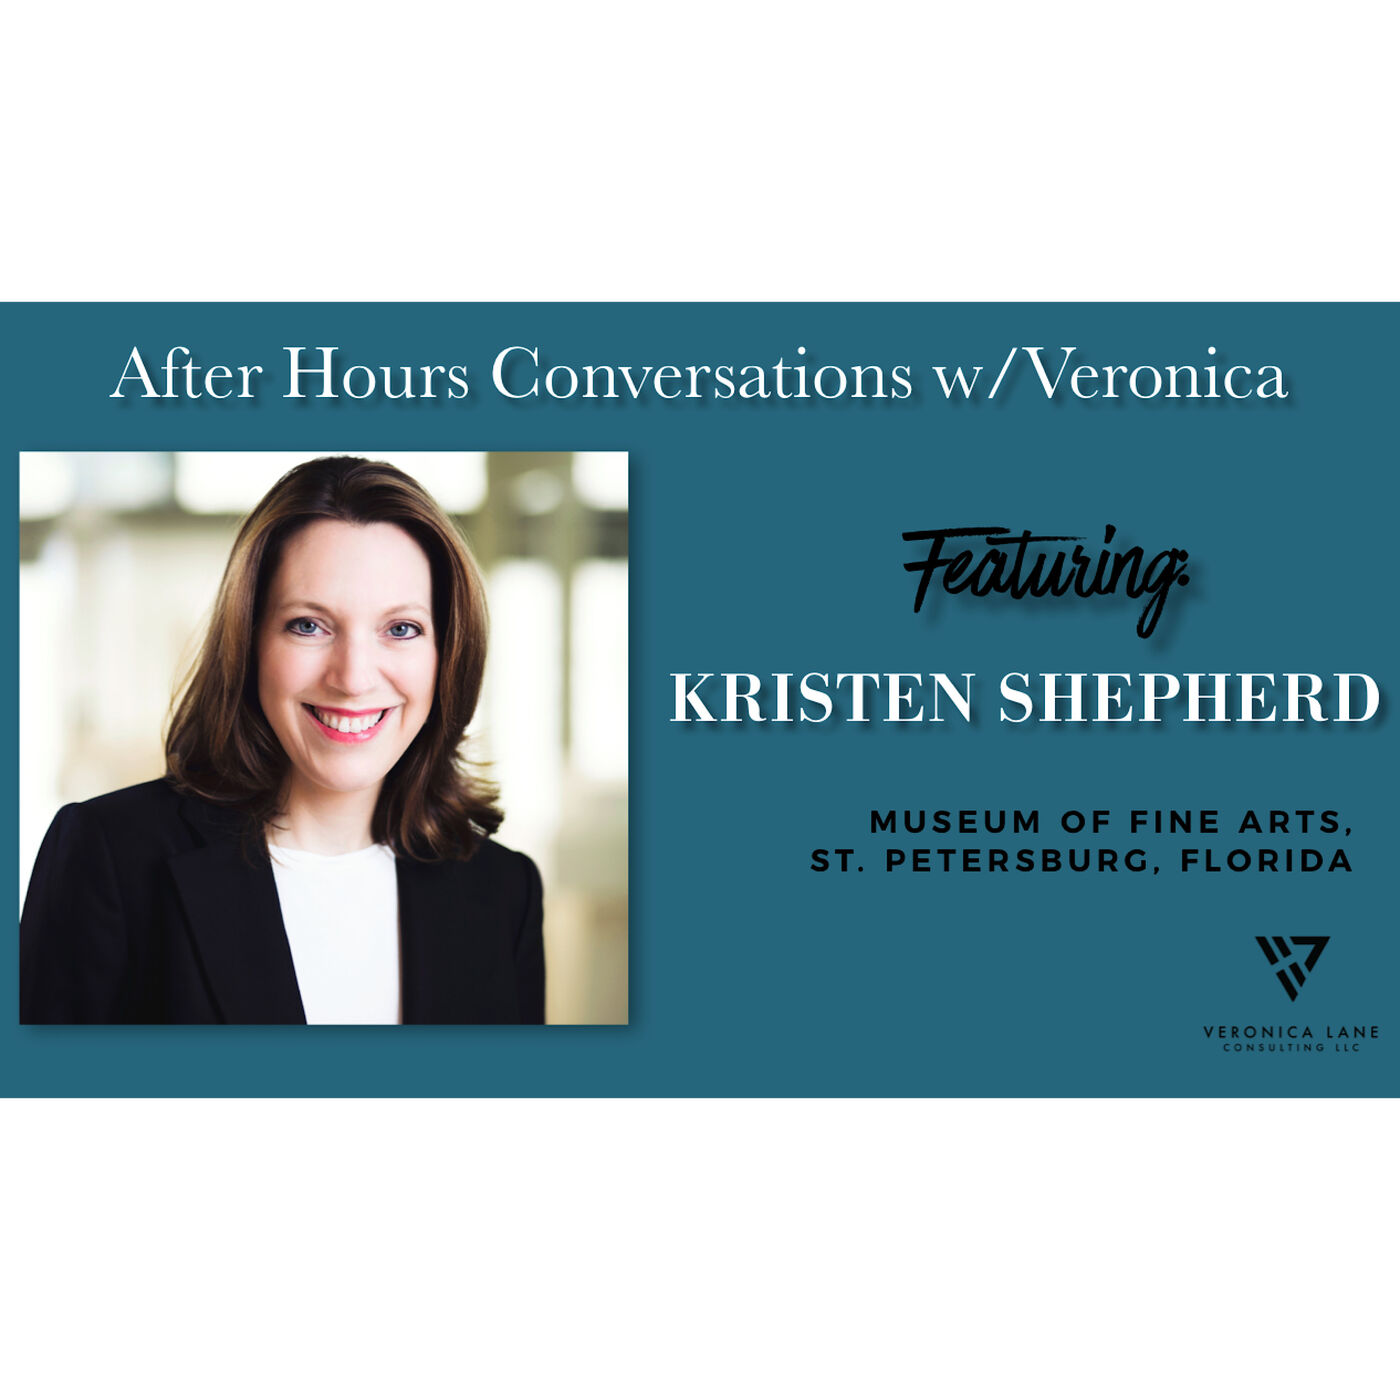 Museum of Fine Arts St. Pete Embodies Project Management Excellence: Featuring Kristen Shepherd